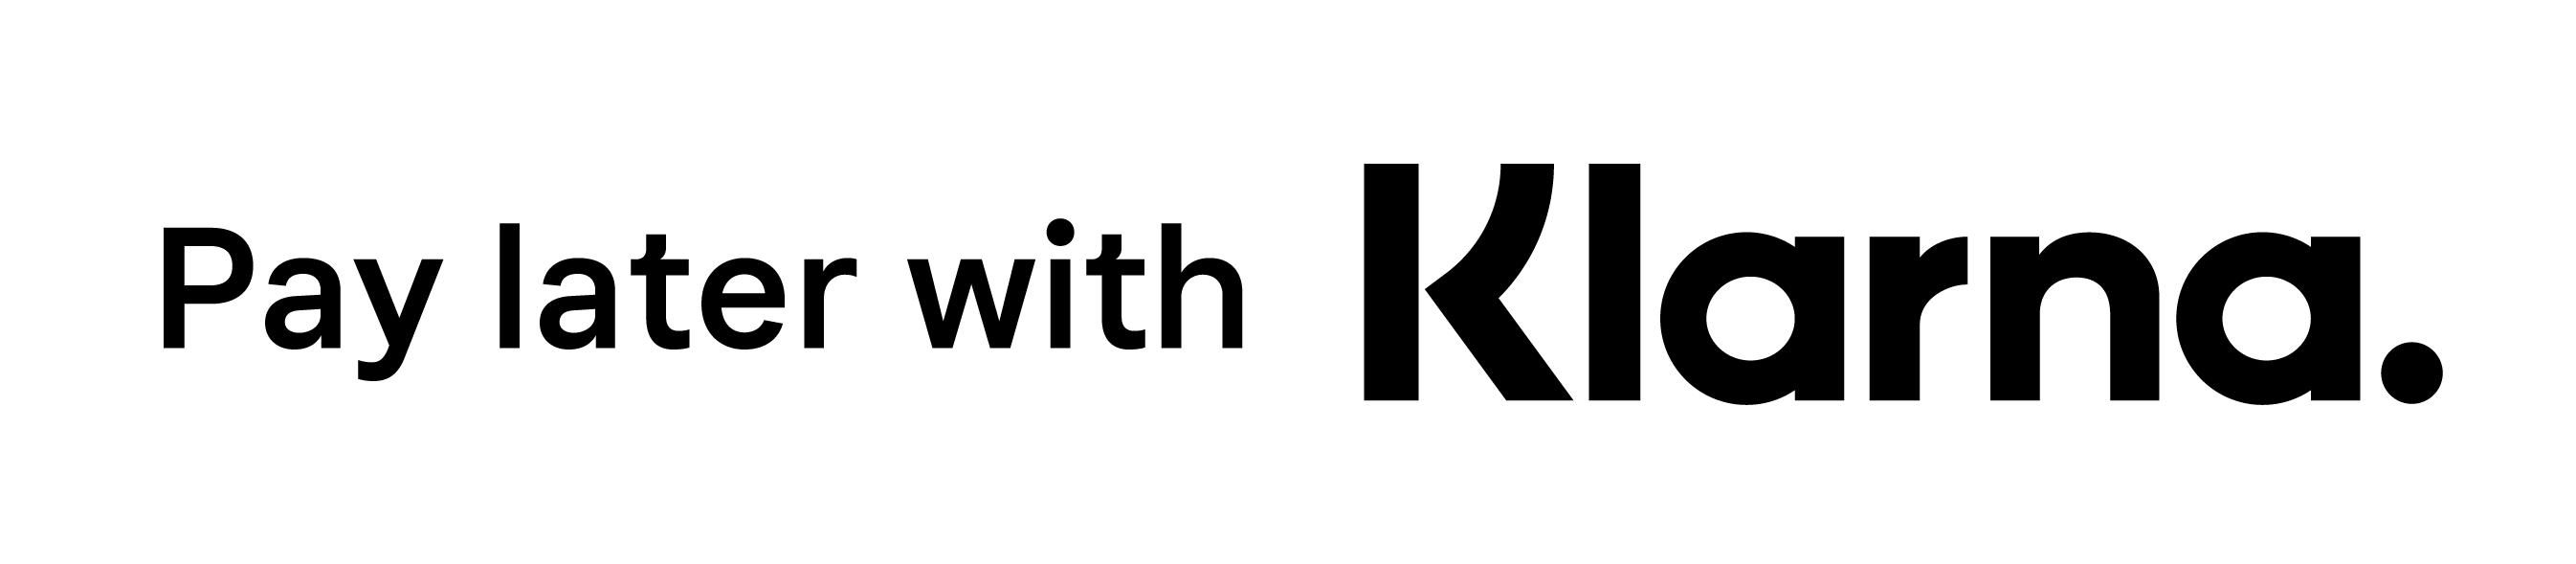 AQ Online Pay Later with Klarna